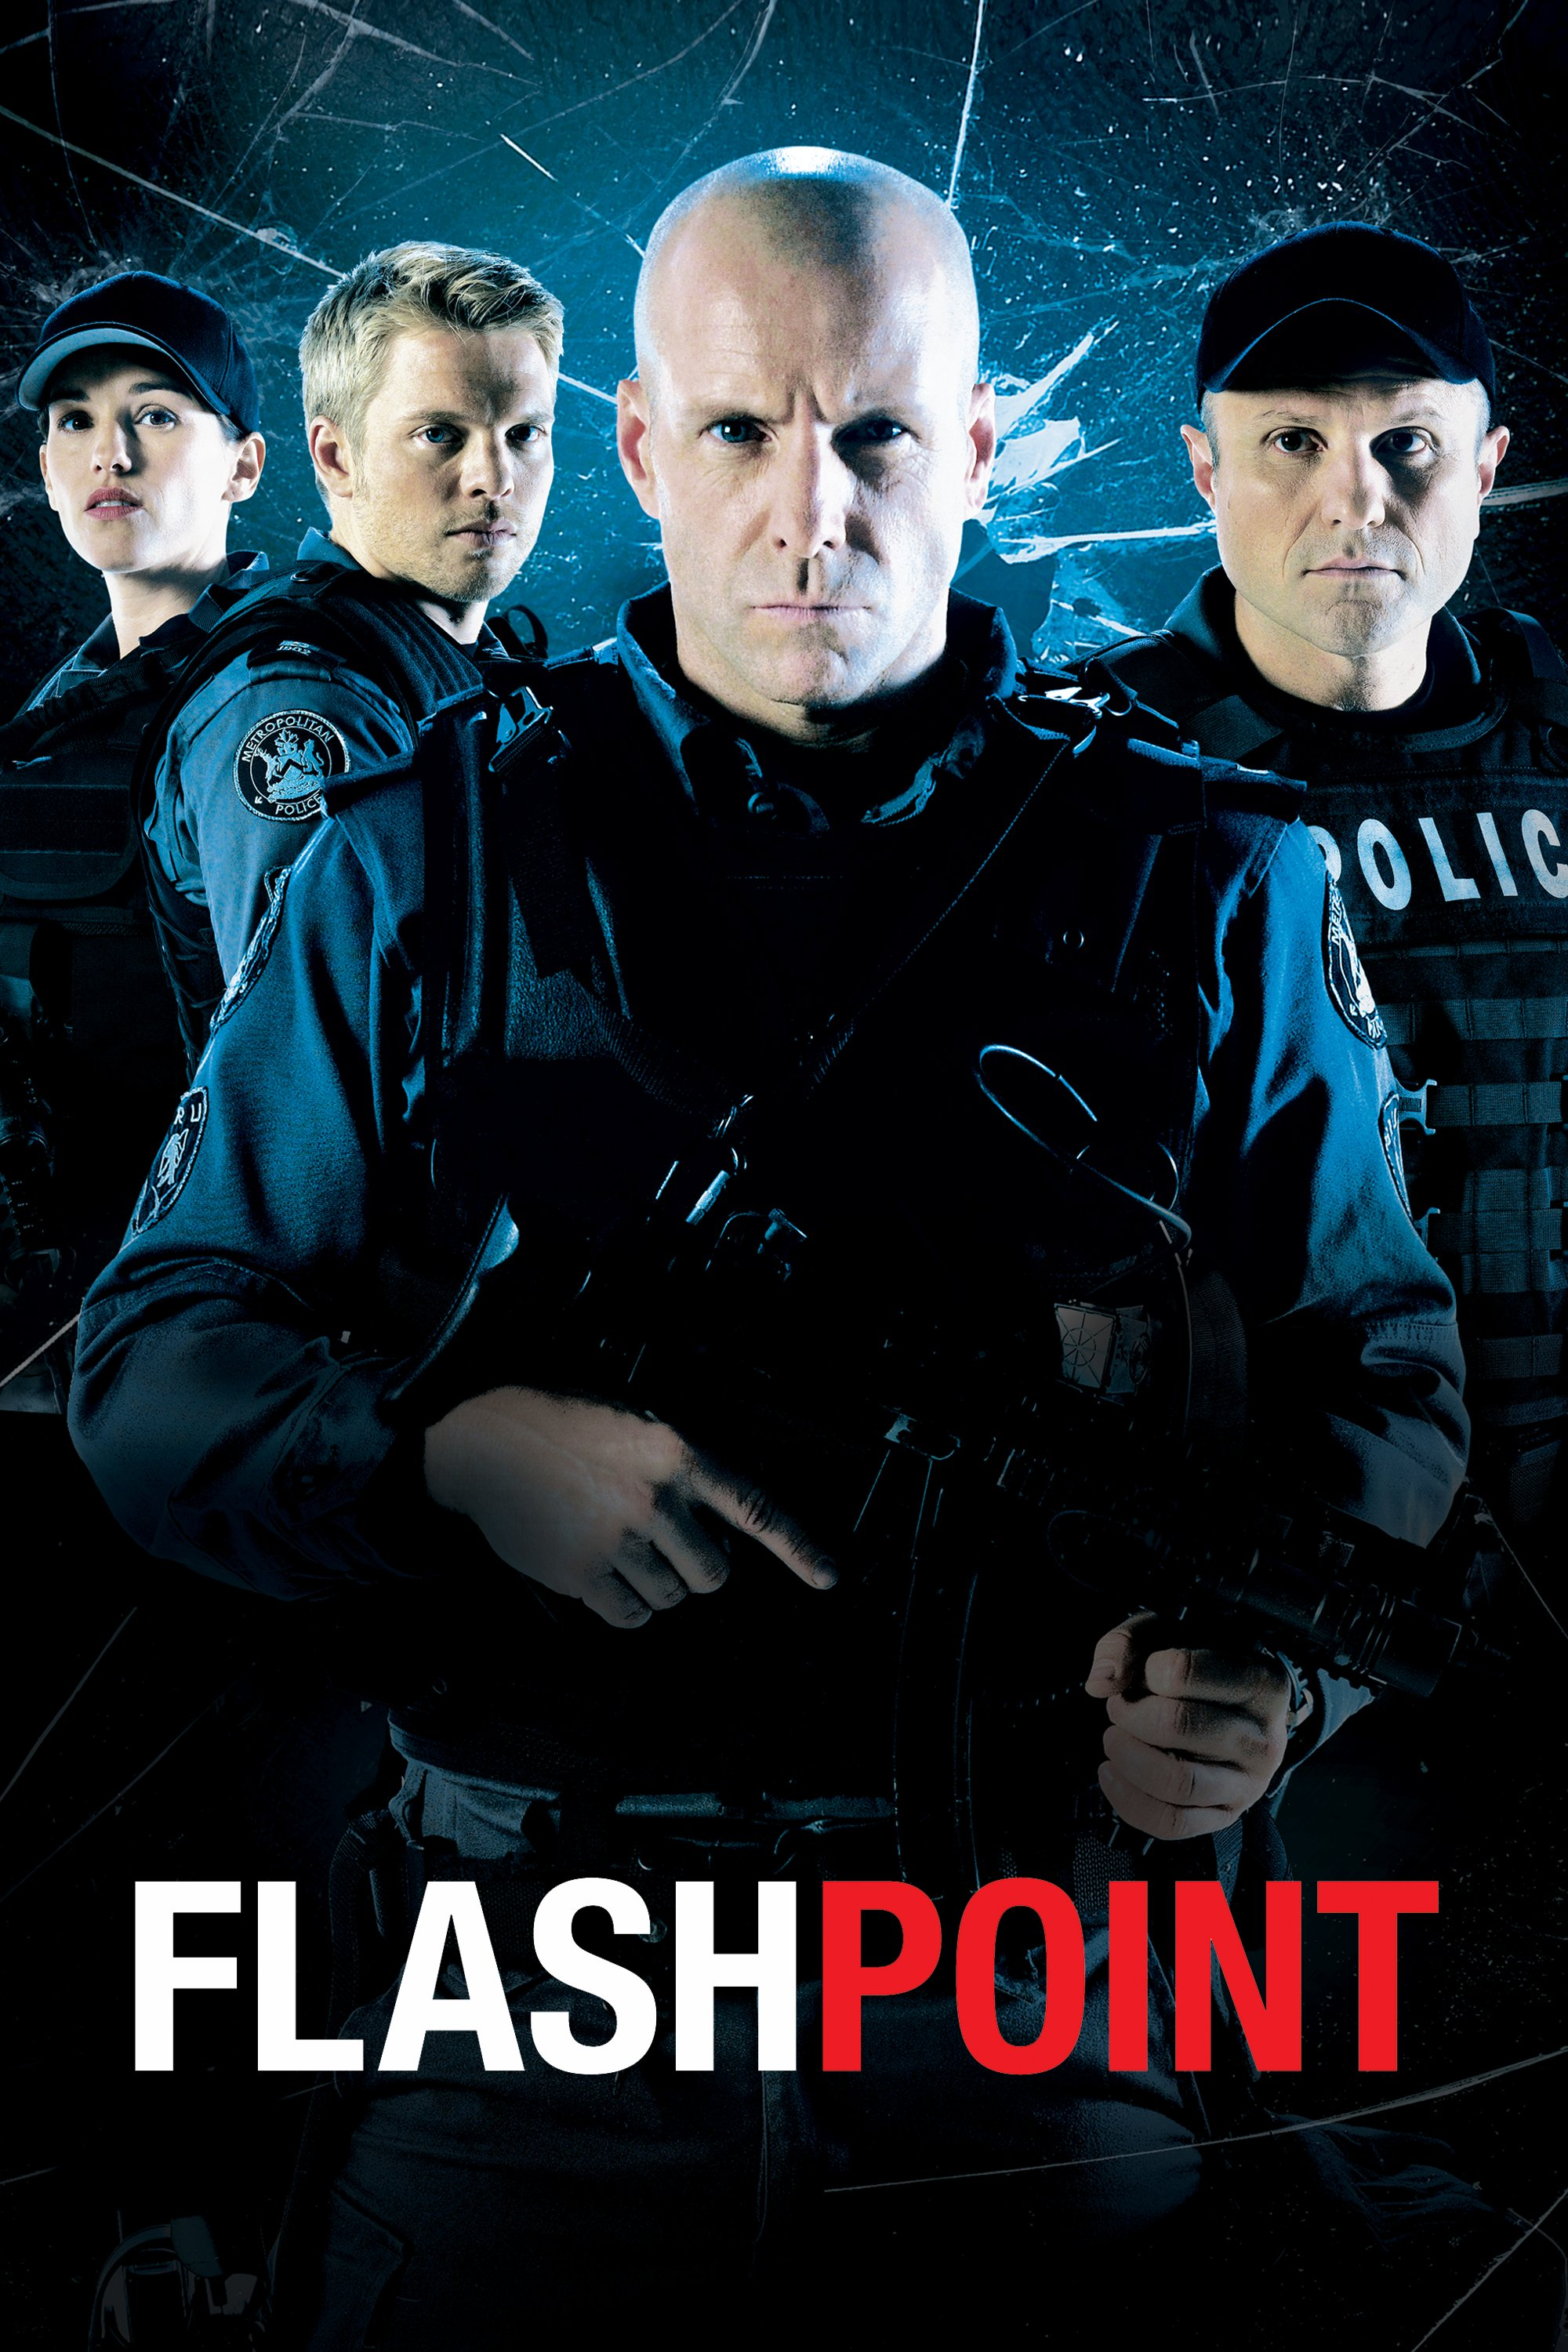 flashpoint full movie 123movies